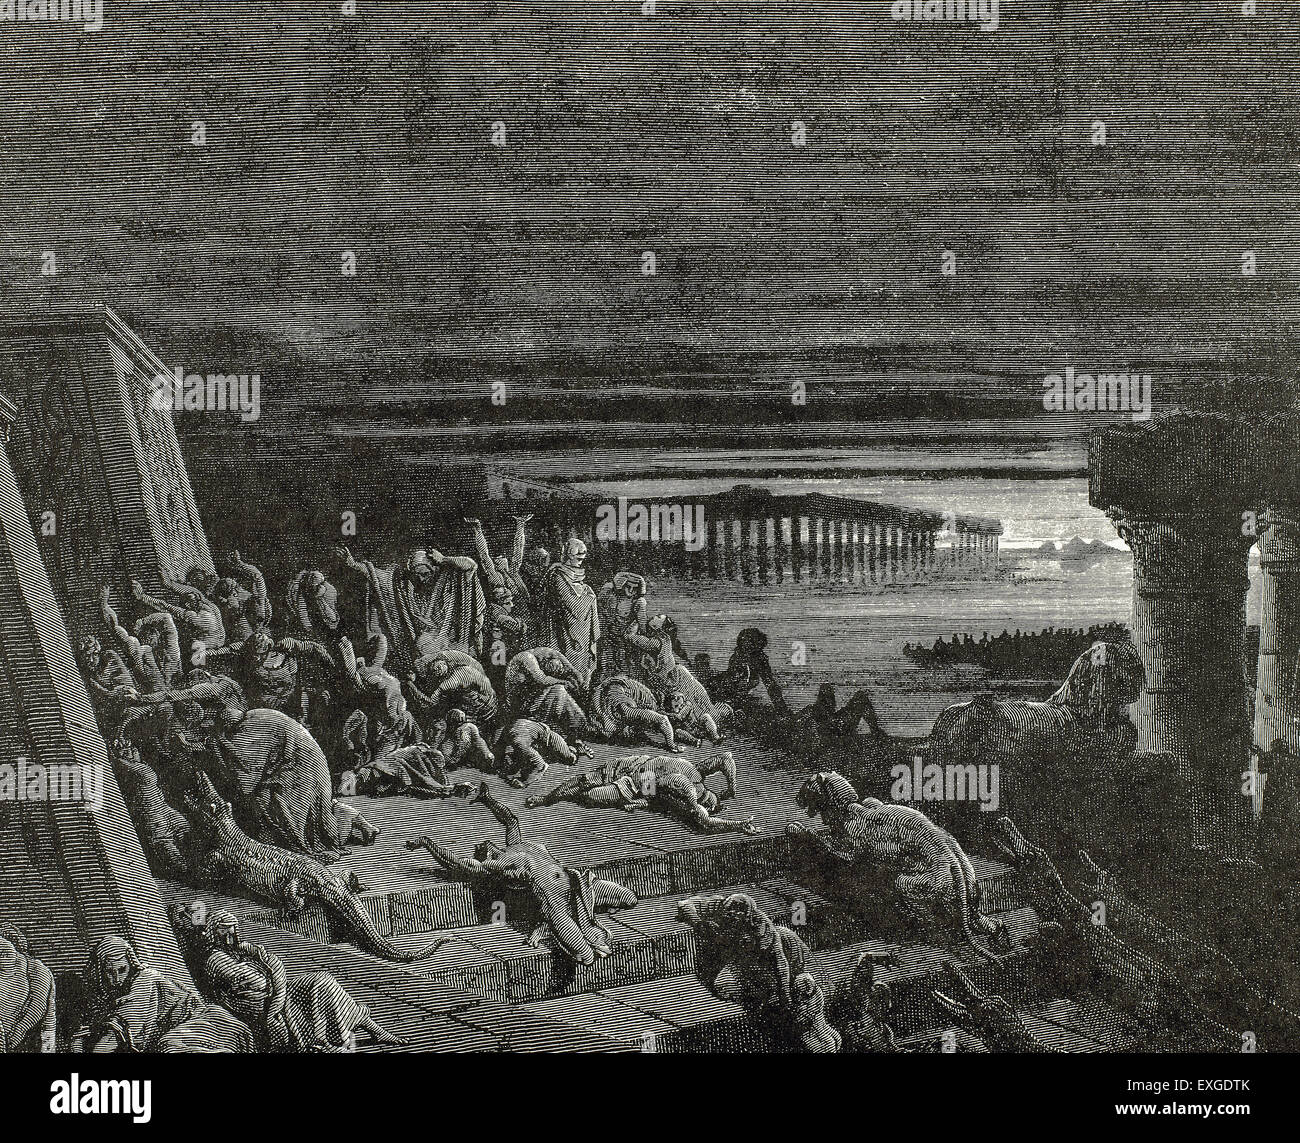 Plague of Darkness. Book of Exodus. Chapter 10, verses 20 to 23. Engraving by Gustave Dore (1832-1883). - Stock Image